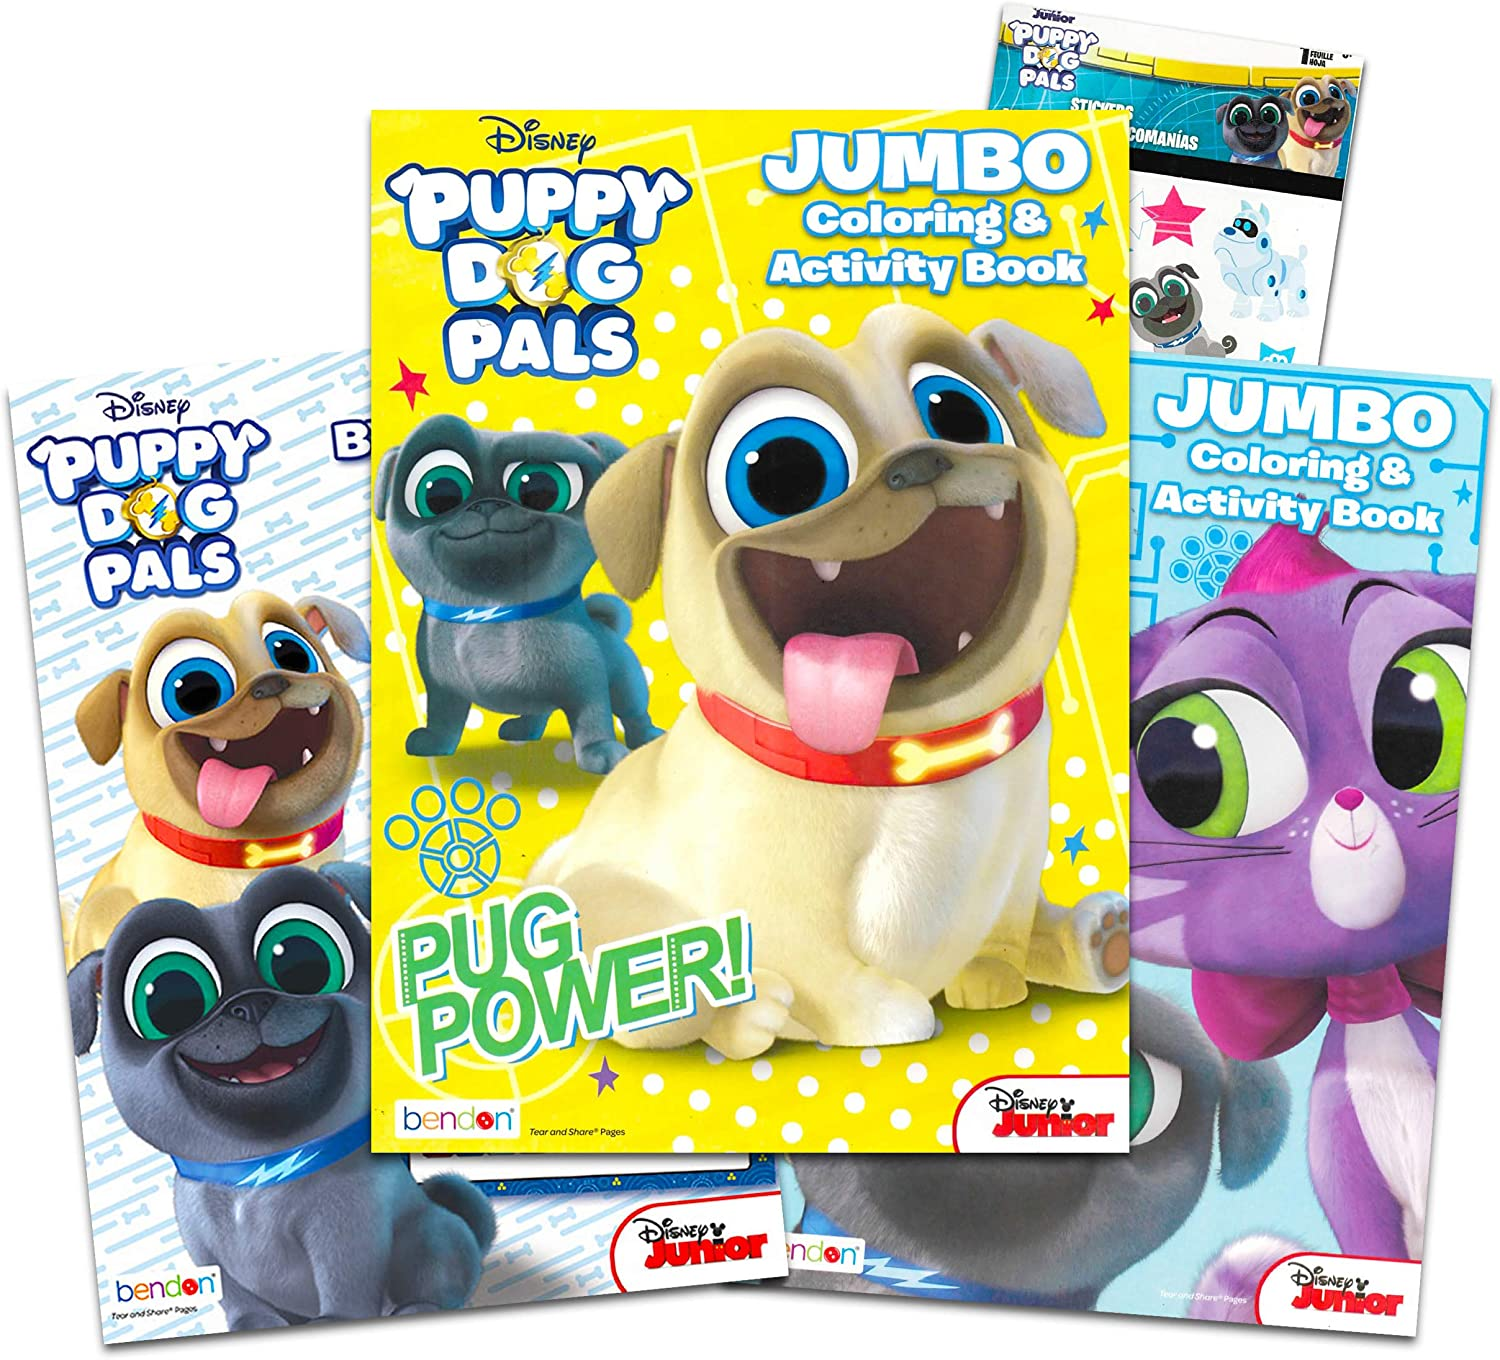 Amazon Com Puppy Dog Pals Coloring Book Bundle Set Set Of 3 Puppy Dog Pals Activity Books With Bonus Reward Stickers Puppy Dog Pals Party Supply Set Toys Games